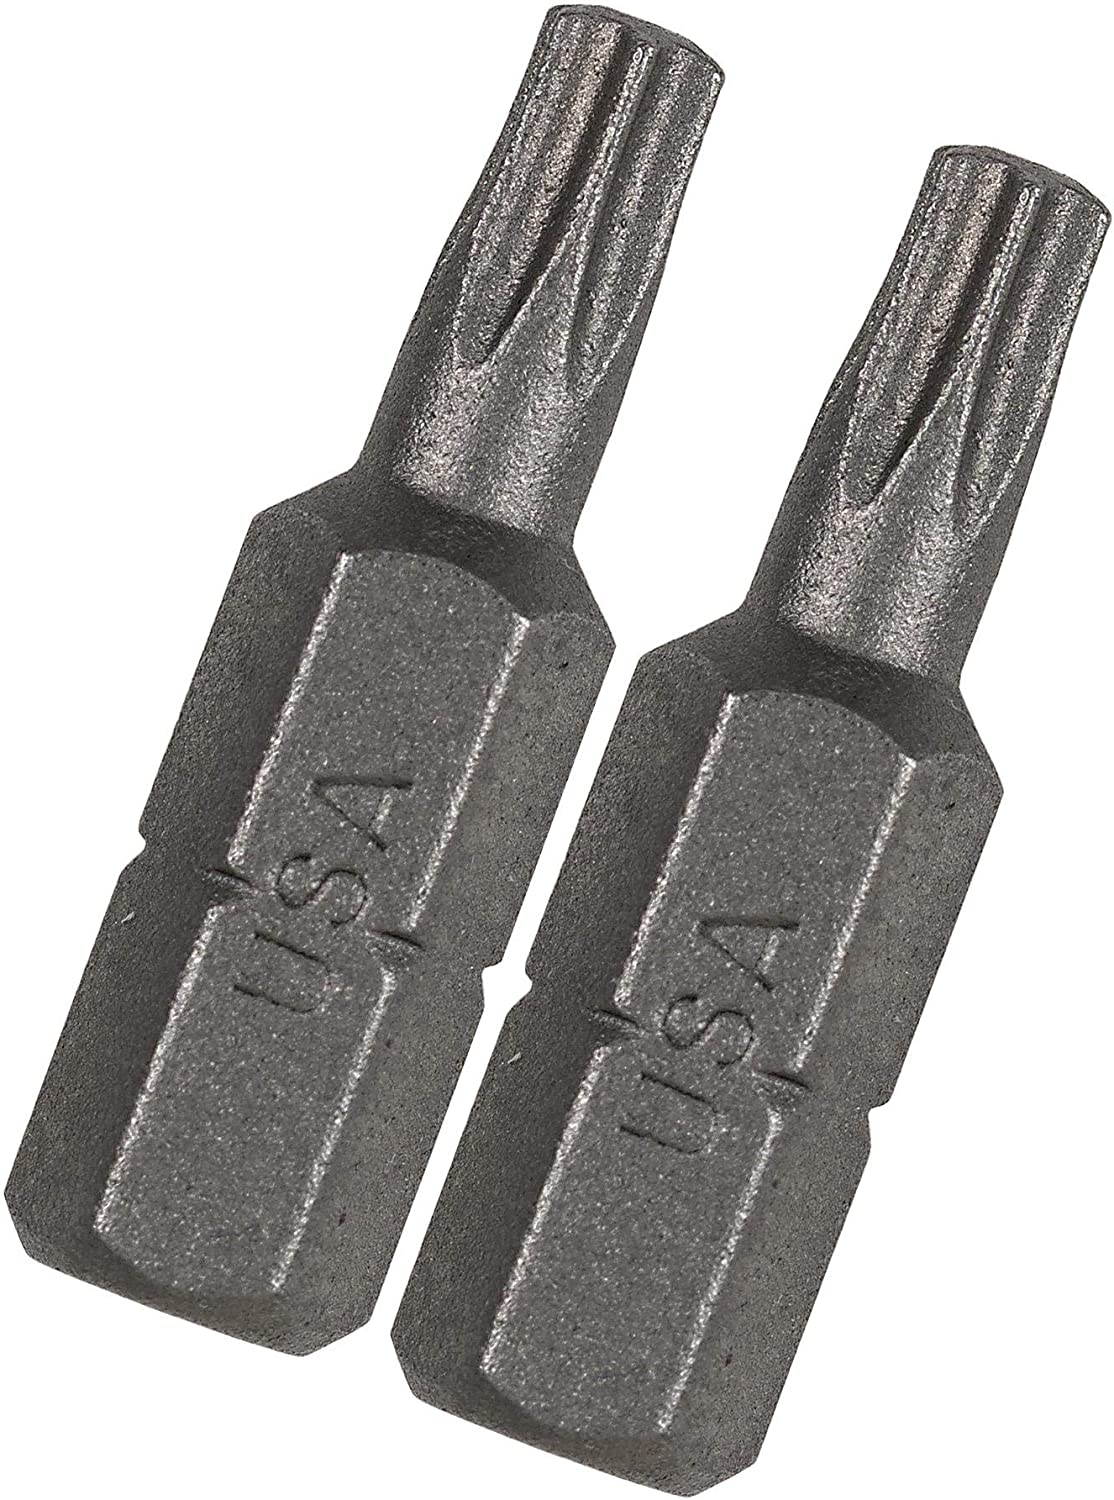 Vermont American 15351 Type Security Torx Size TX9 with 1-Inch Length Extra Hard Screwdriver Bit